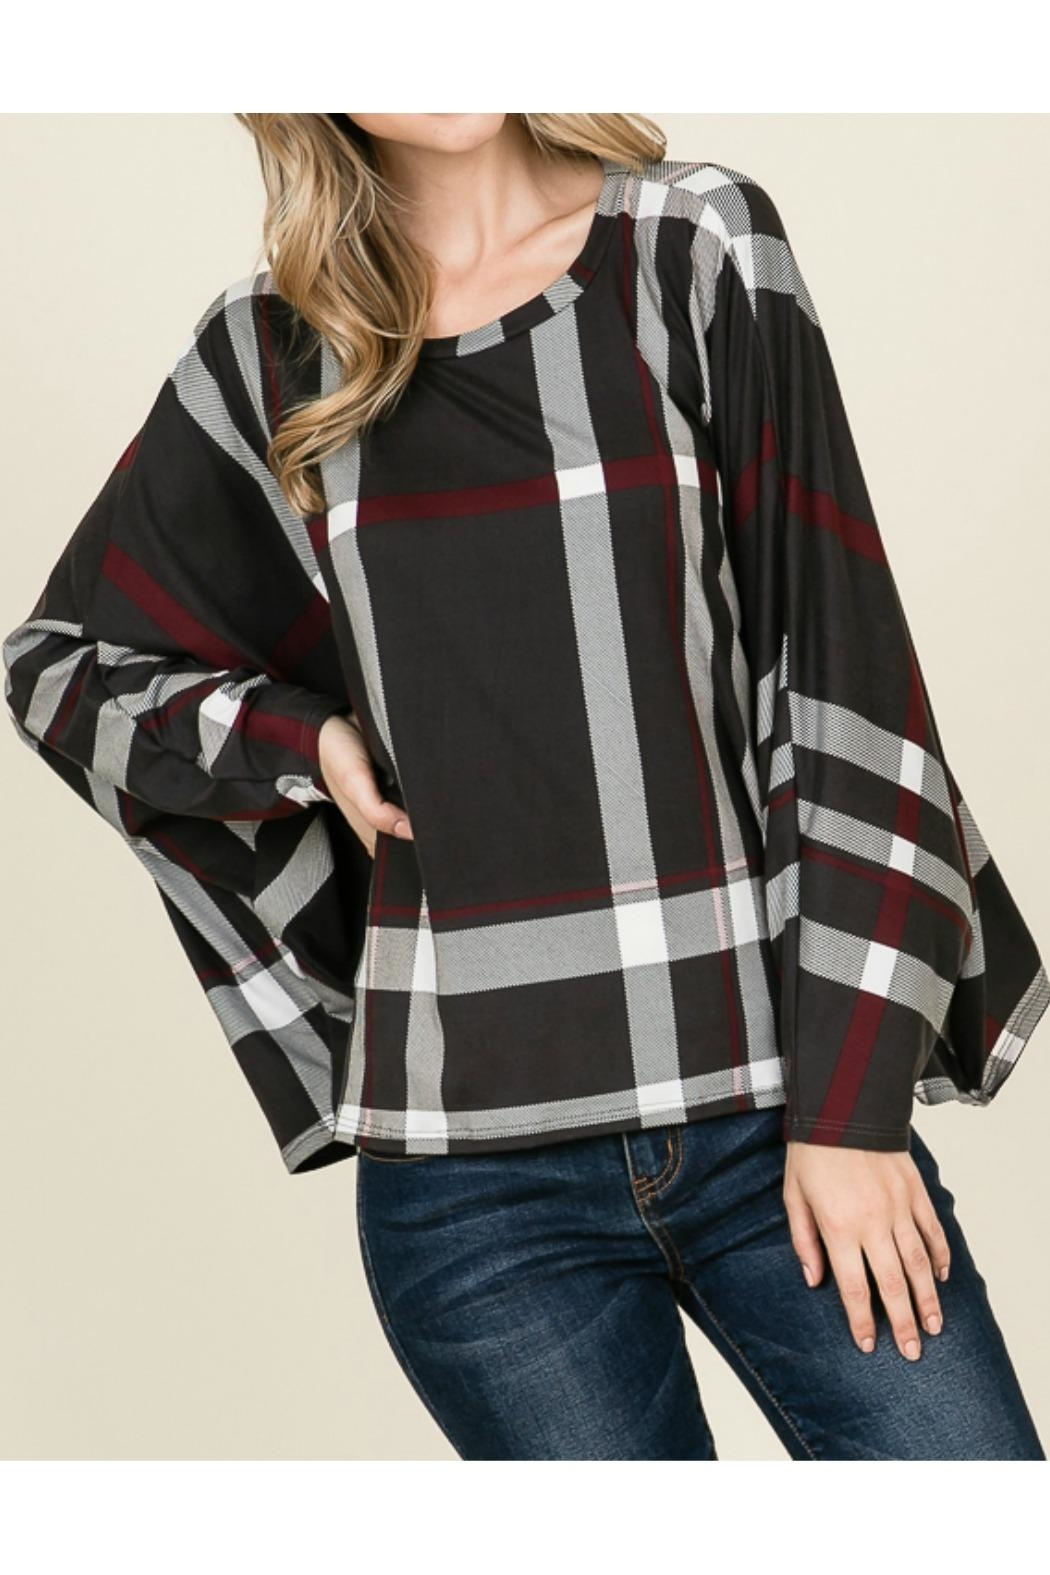 Reborn J Plaid Dolman Top - Main Image